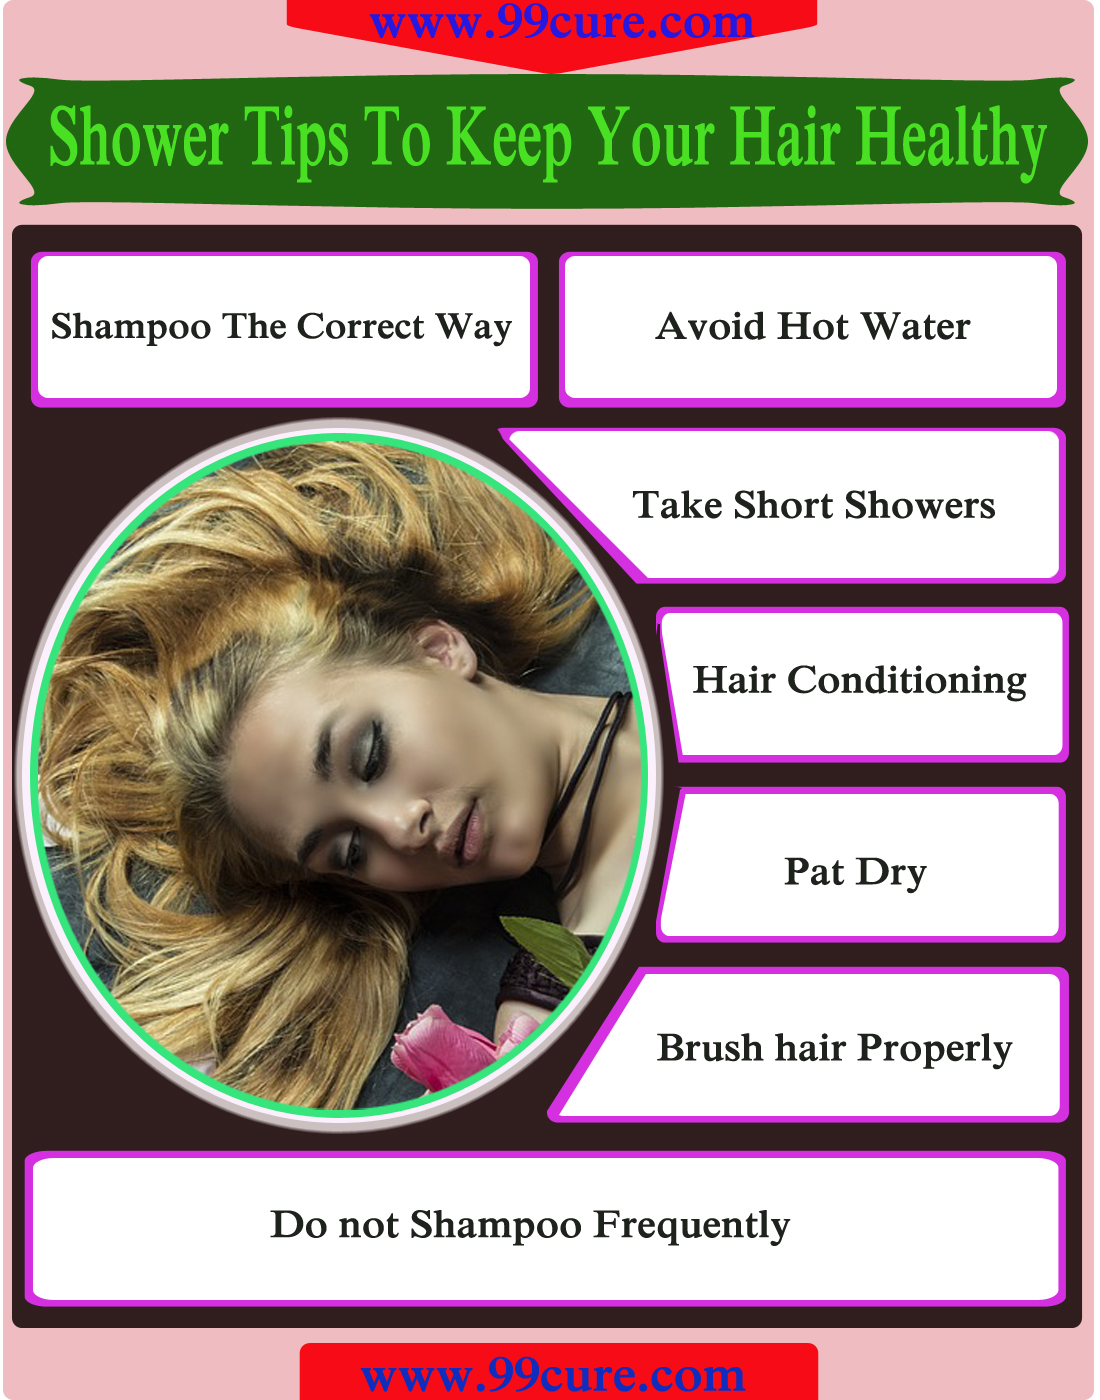 Shower Tips To Keep Your Hair Healthy